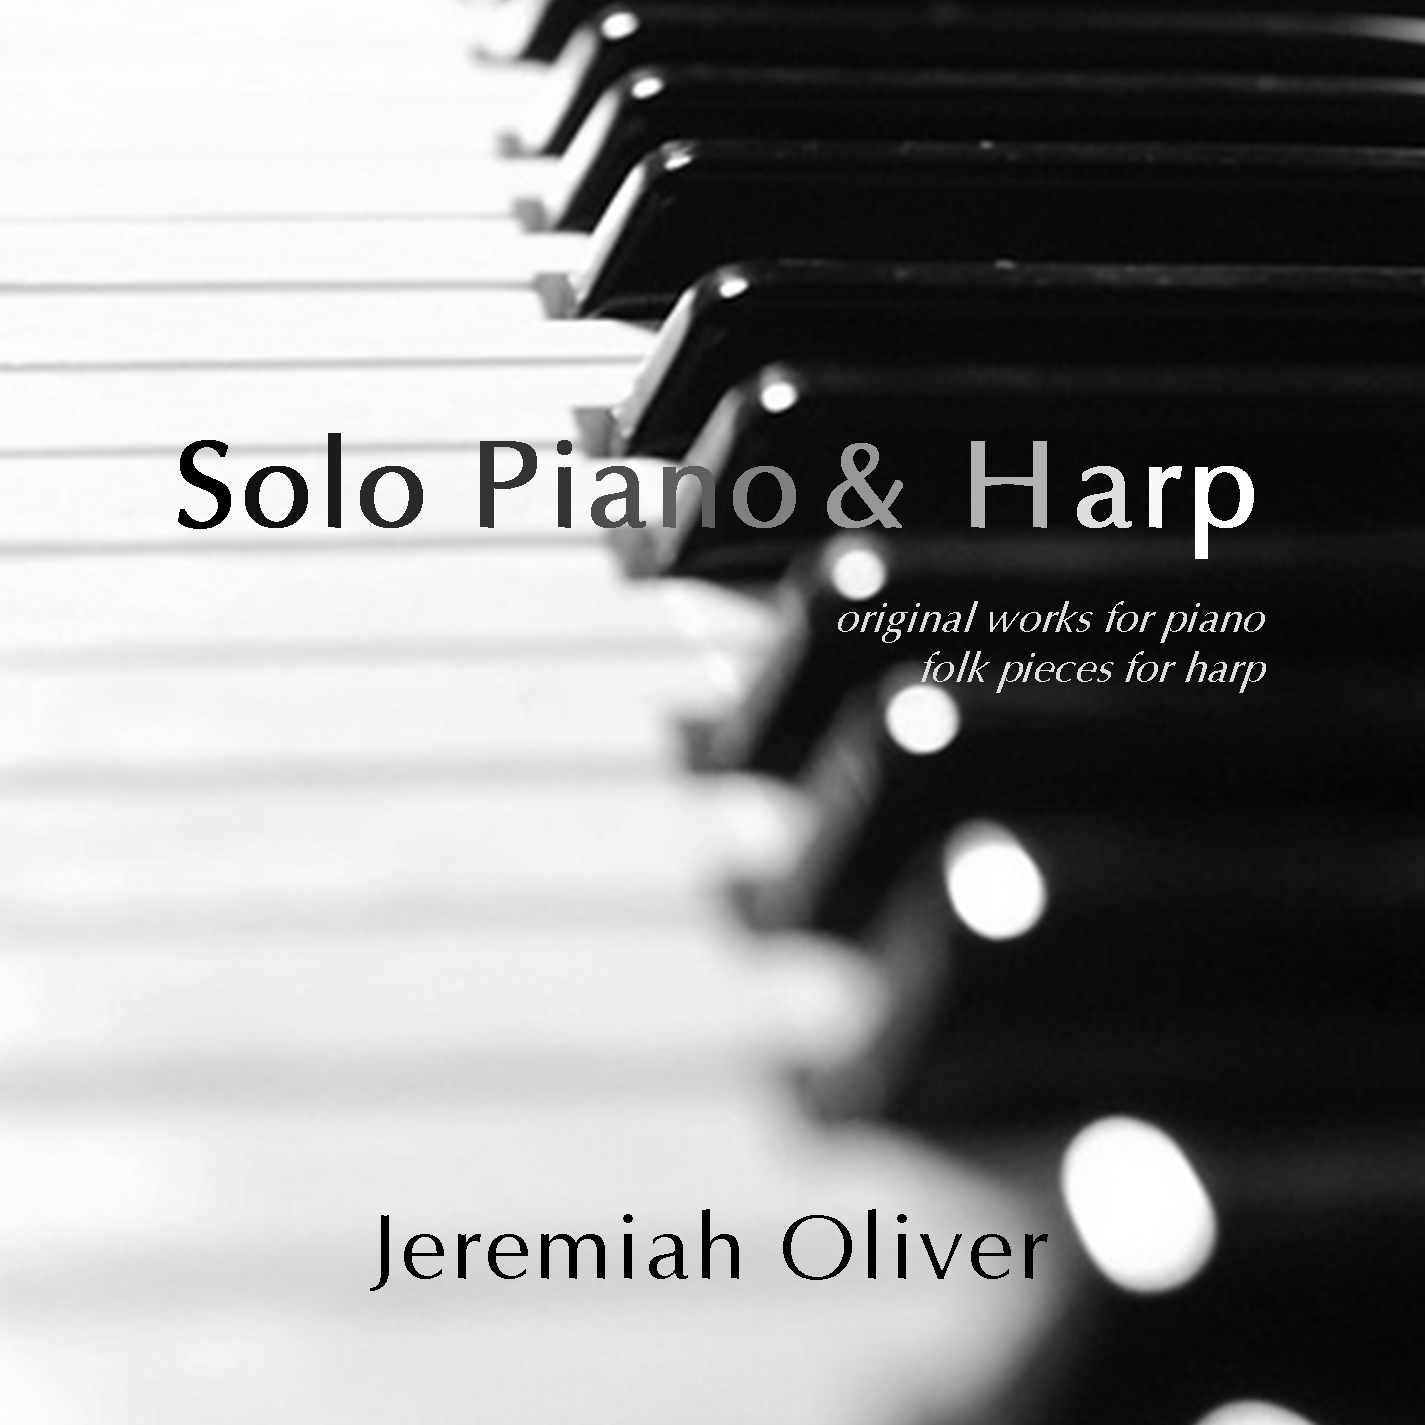 8 original works for piano & 5 folk pieces for harp -